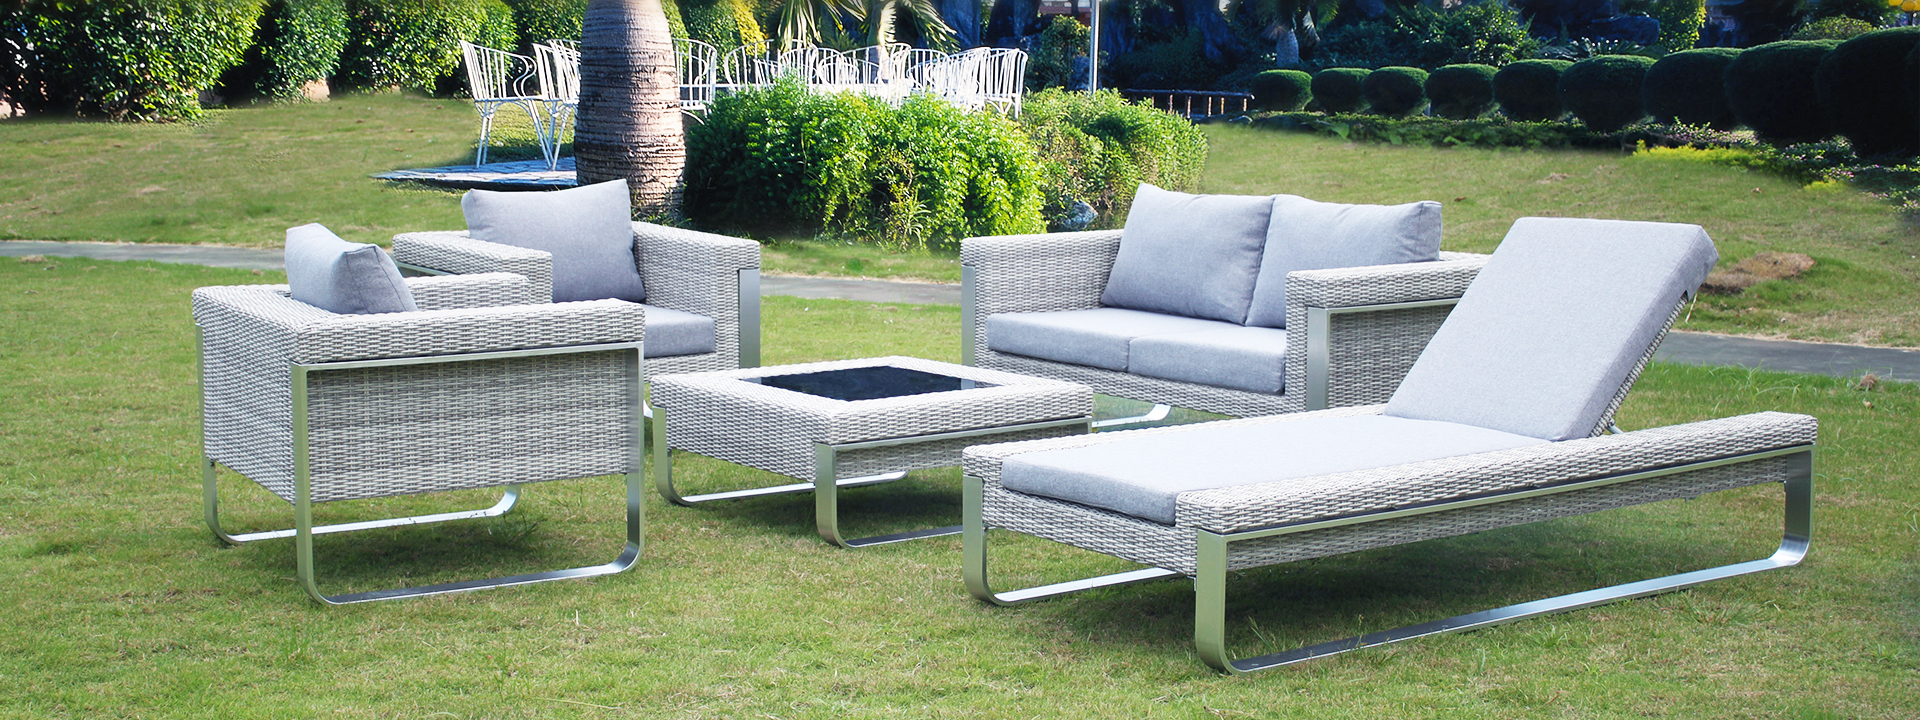 Outdoor Bubble Bett Foshan Darwin Furniture Co Ltd Rattan Sofa Rattan